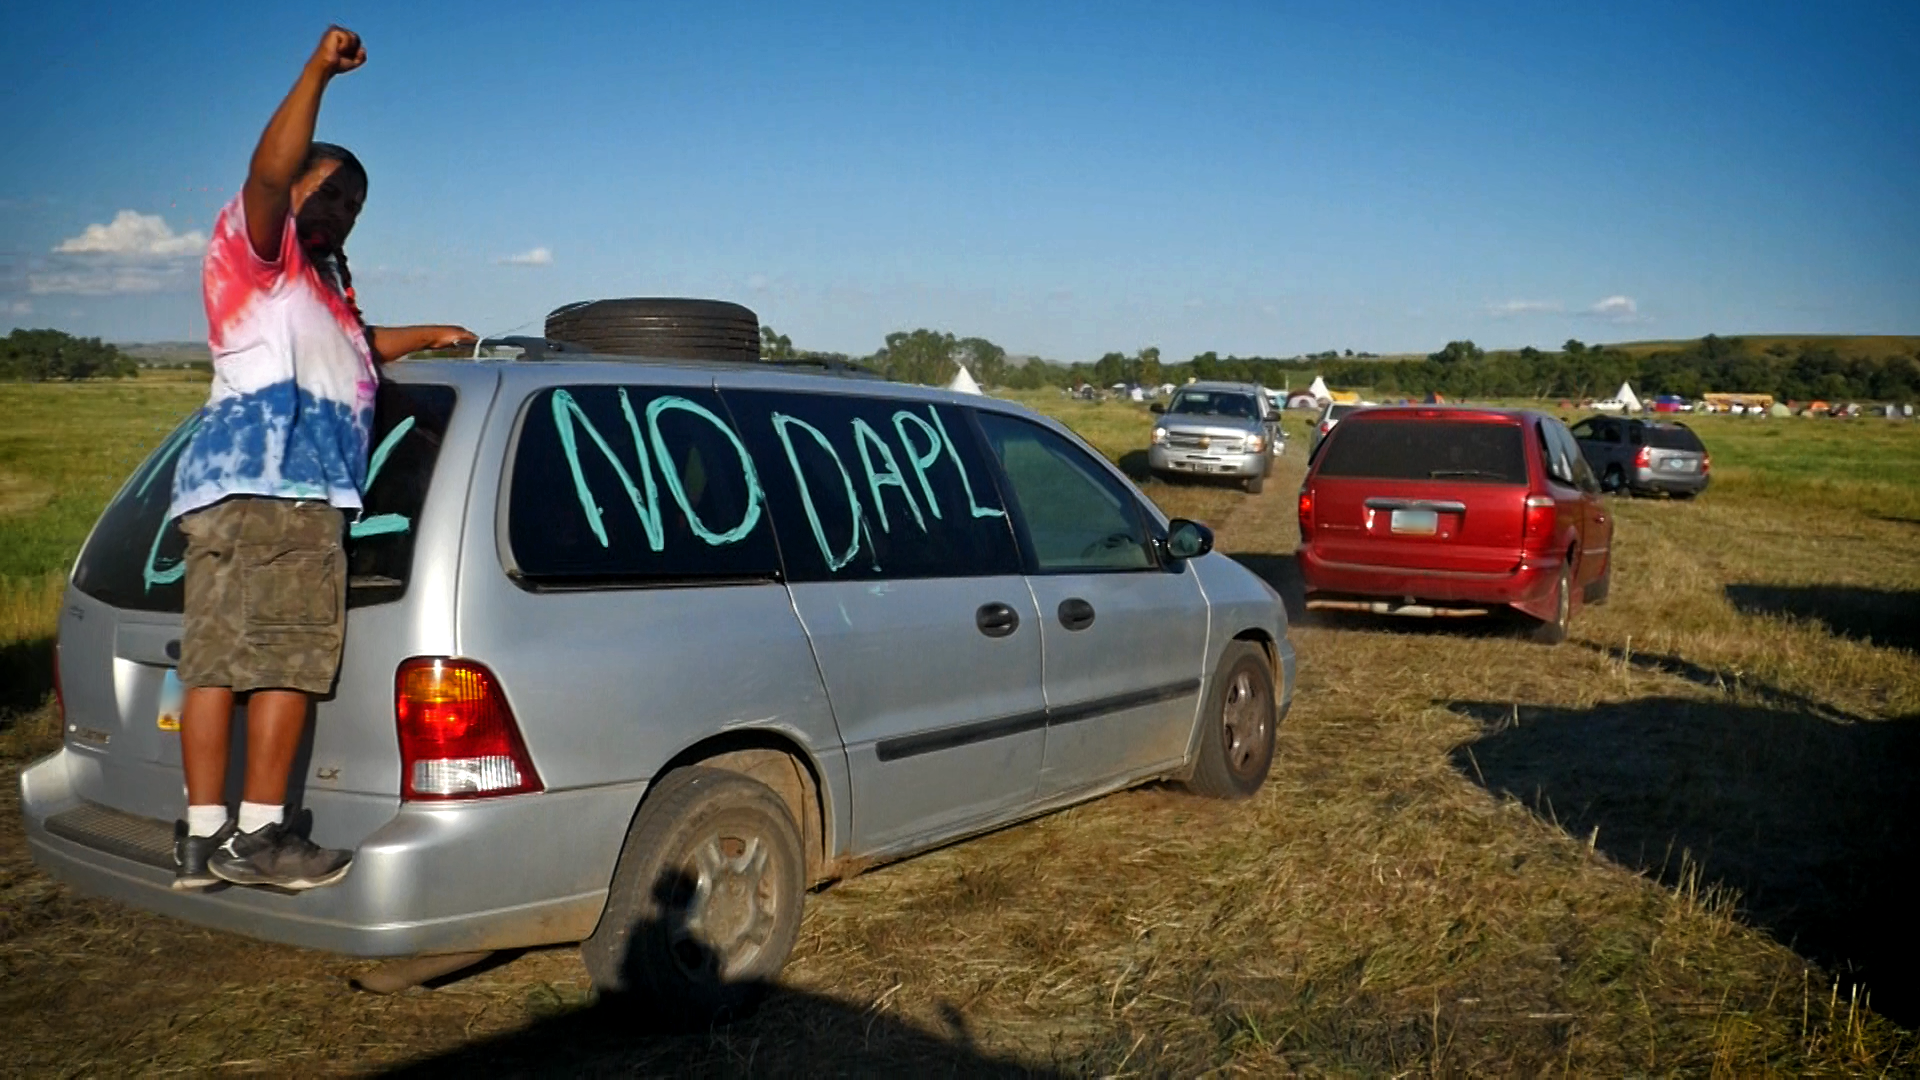 #NoDAPL written on the side of a van in the Sacred Stone Camp in Standing Rock. Photo by David Swenson.